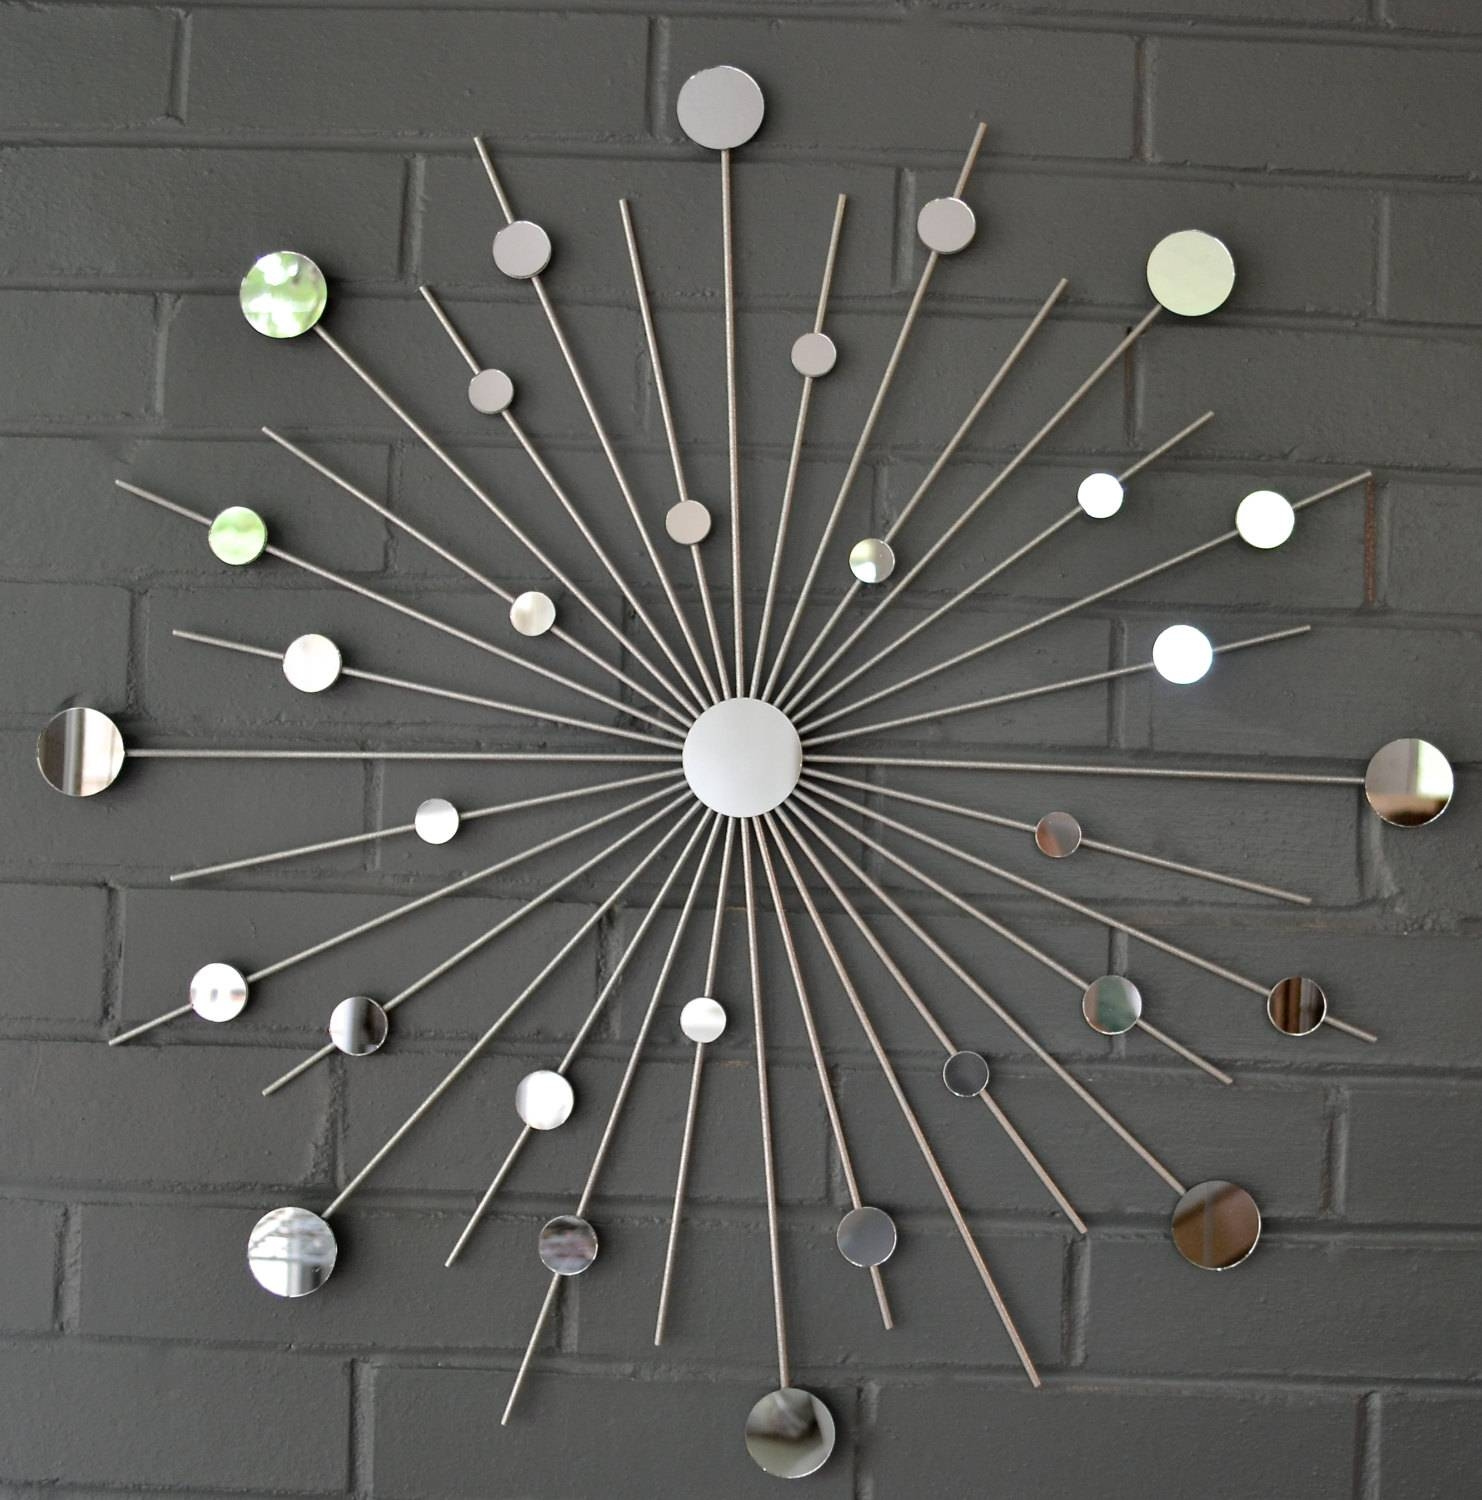 Decorating: 24 Starburst Modern Metal Wall Art Mirror Retro For Throughout Most Popular Metal Wall Art Mirrors (View 3 of 20)